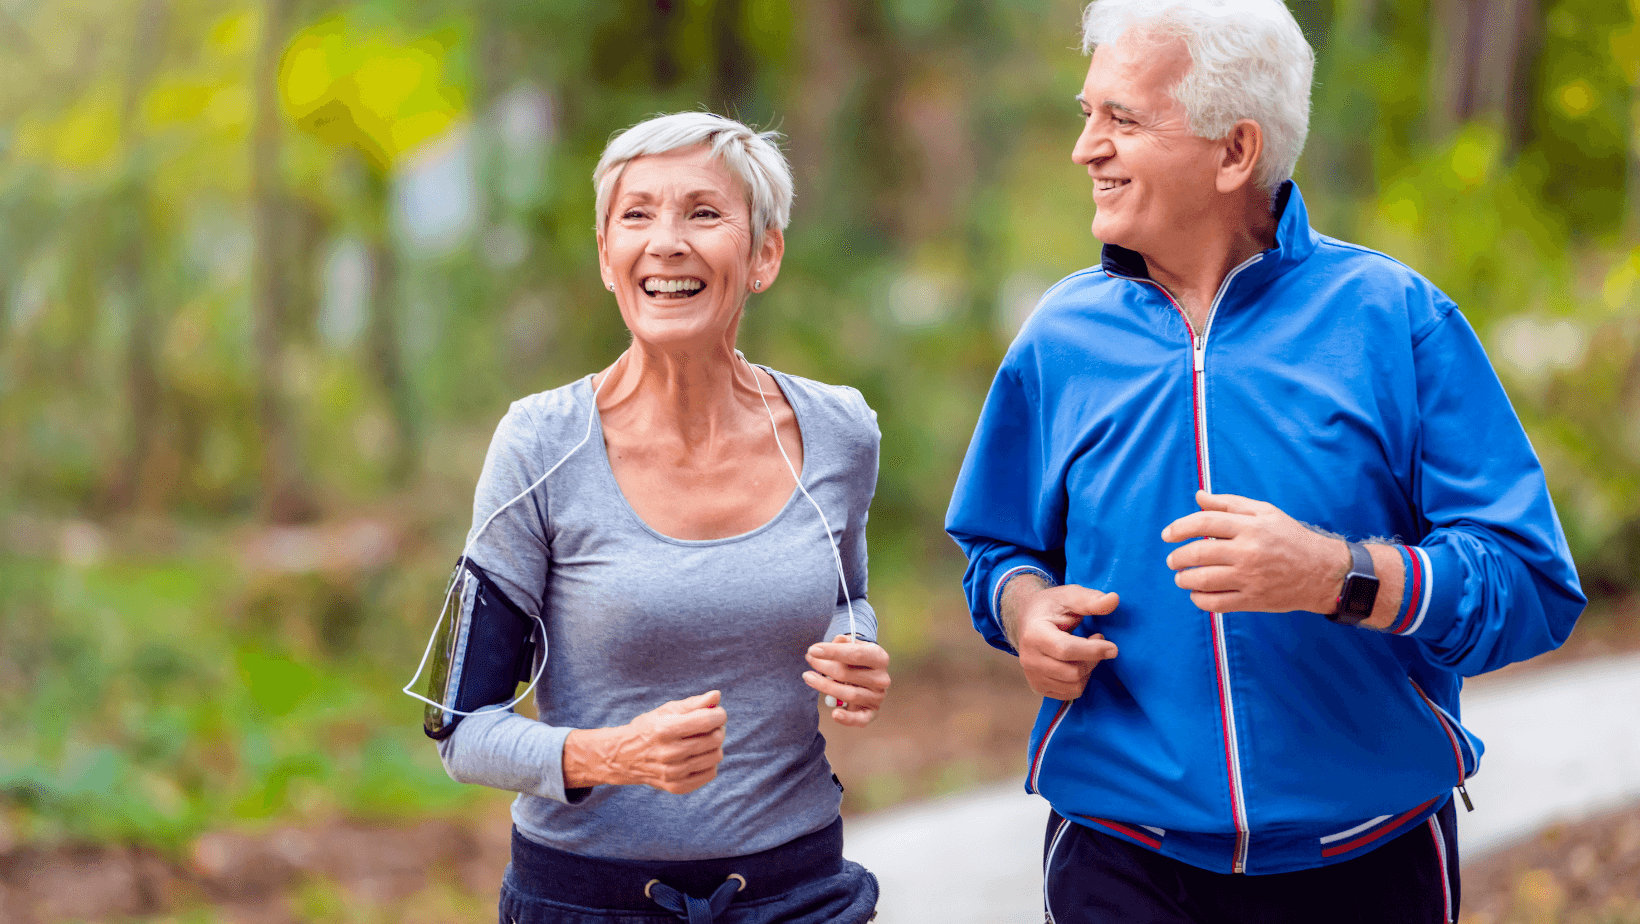 senior woman and man jogging outdoors